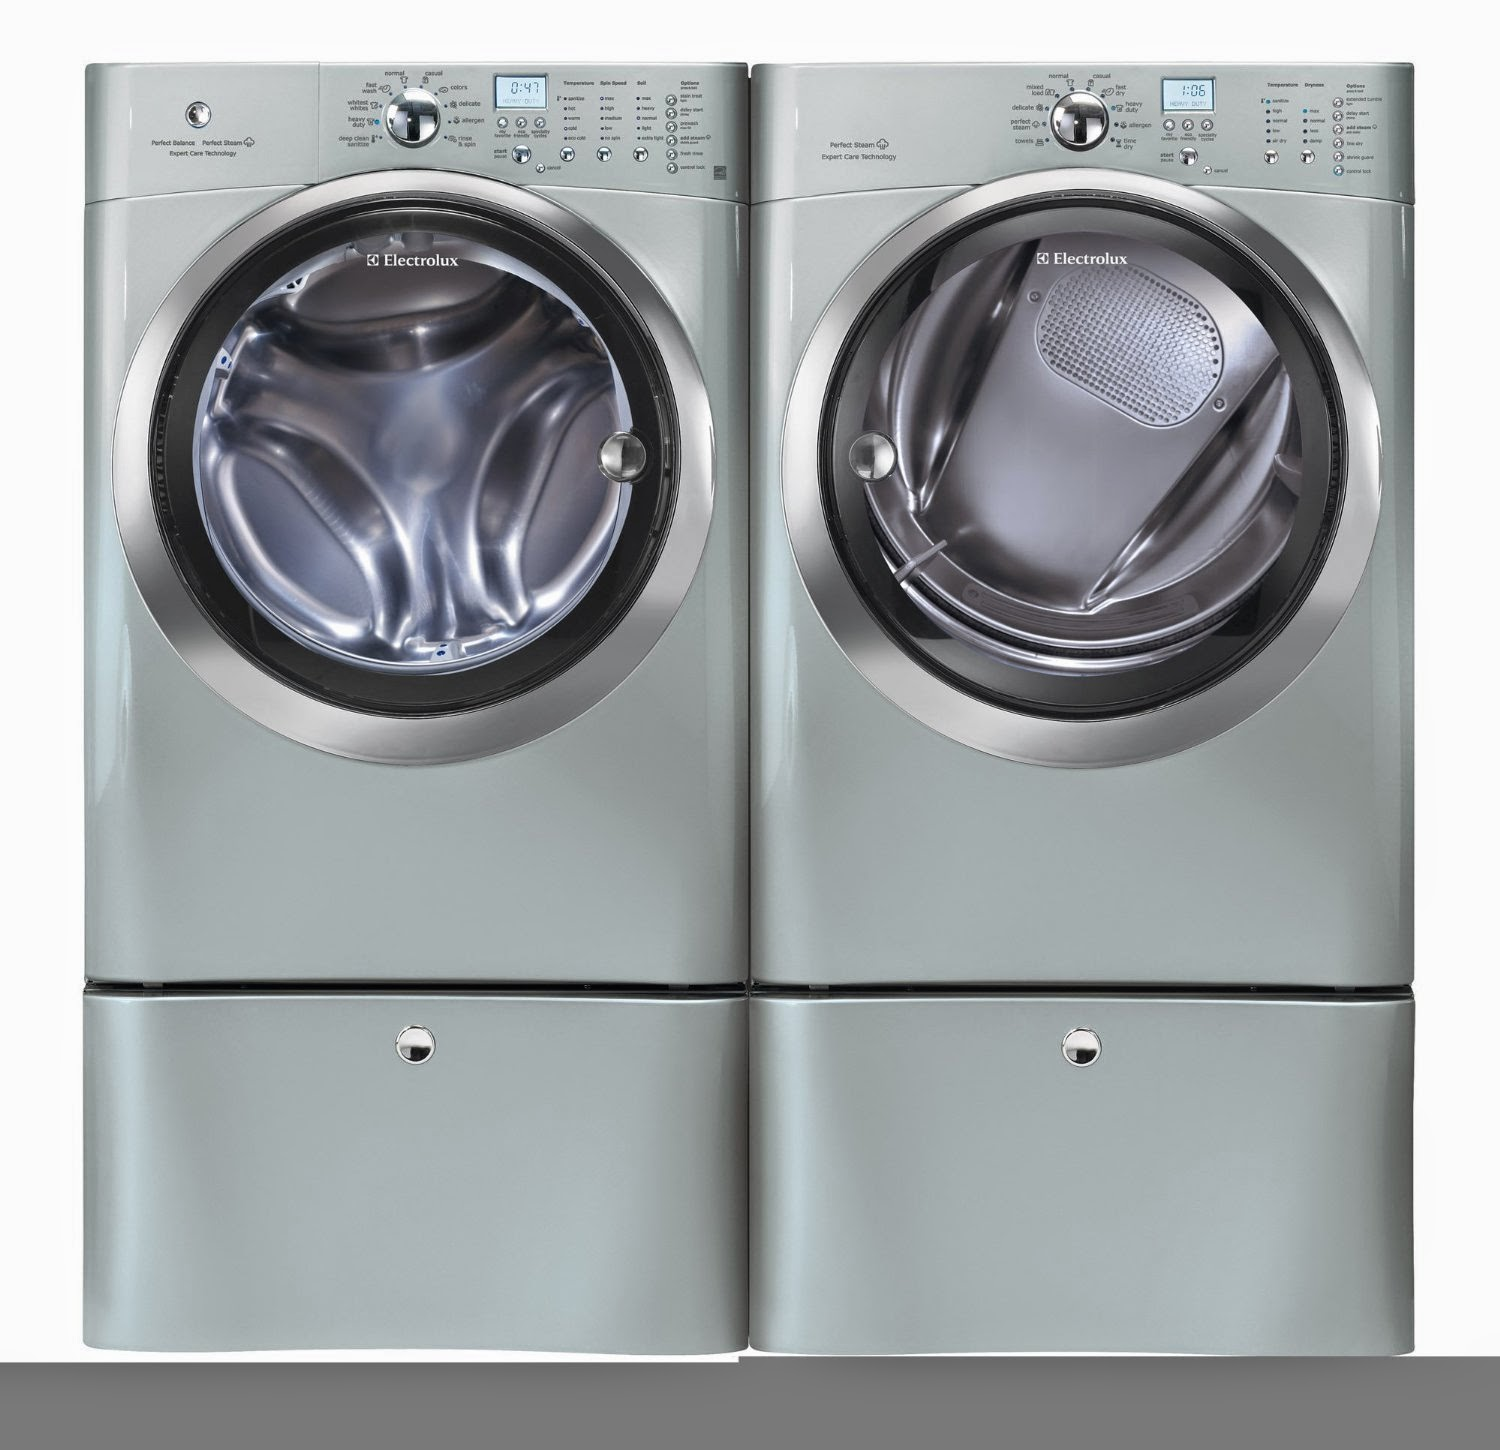 Electrolux washer Electrolux washer and dryer